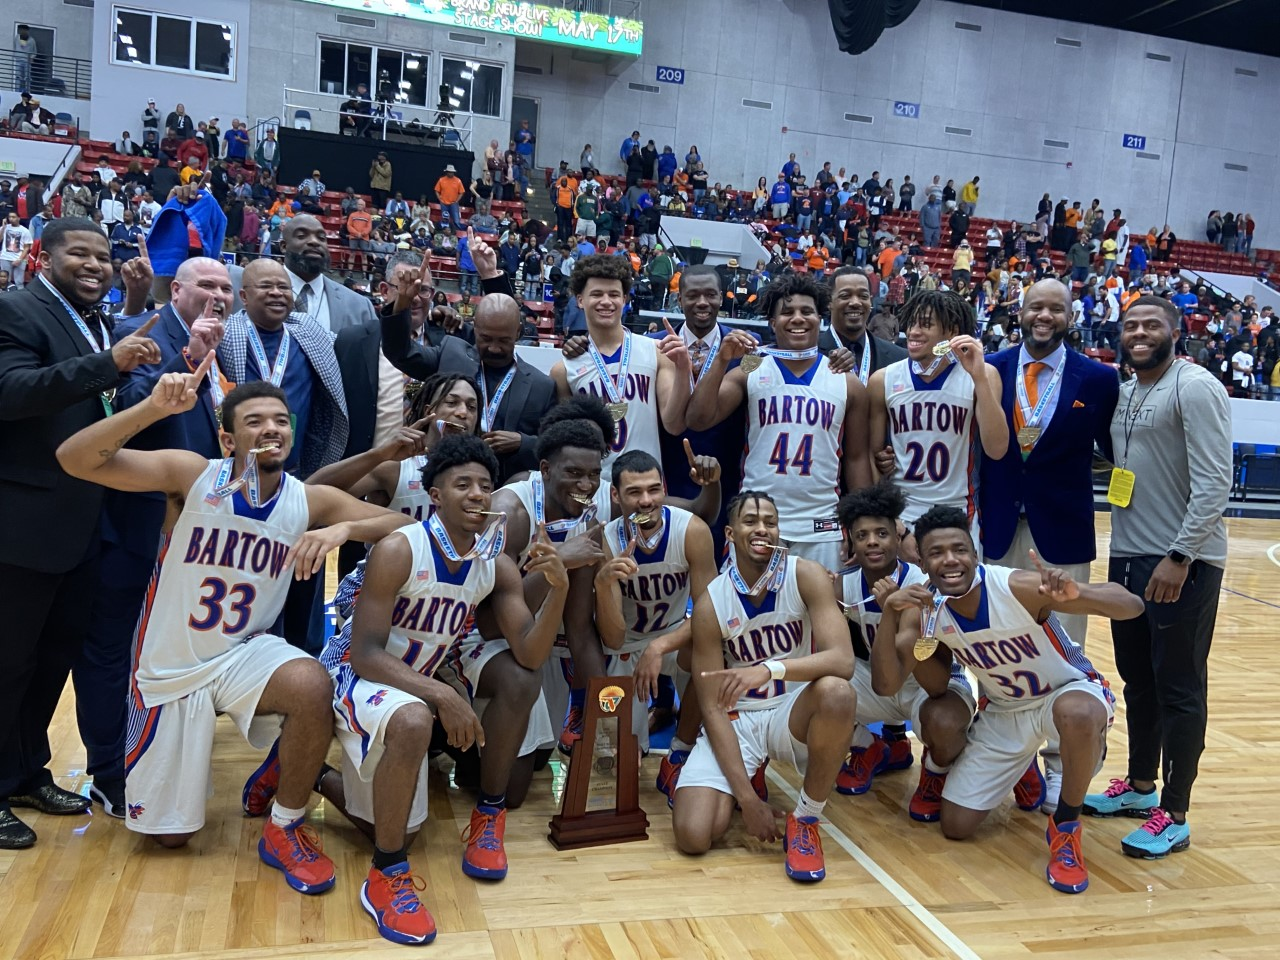 2020 Bartow Boys Basketball Class 6A State Campions